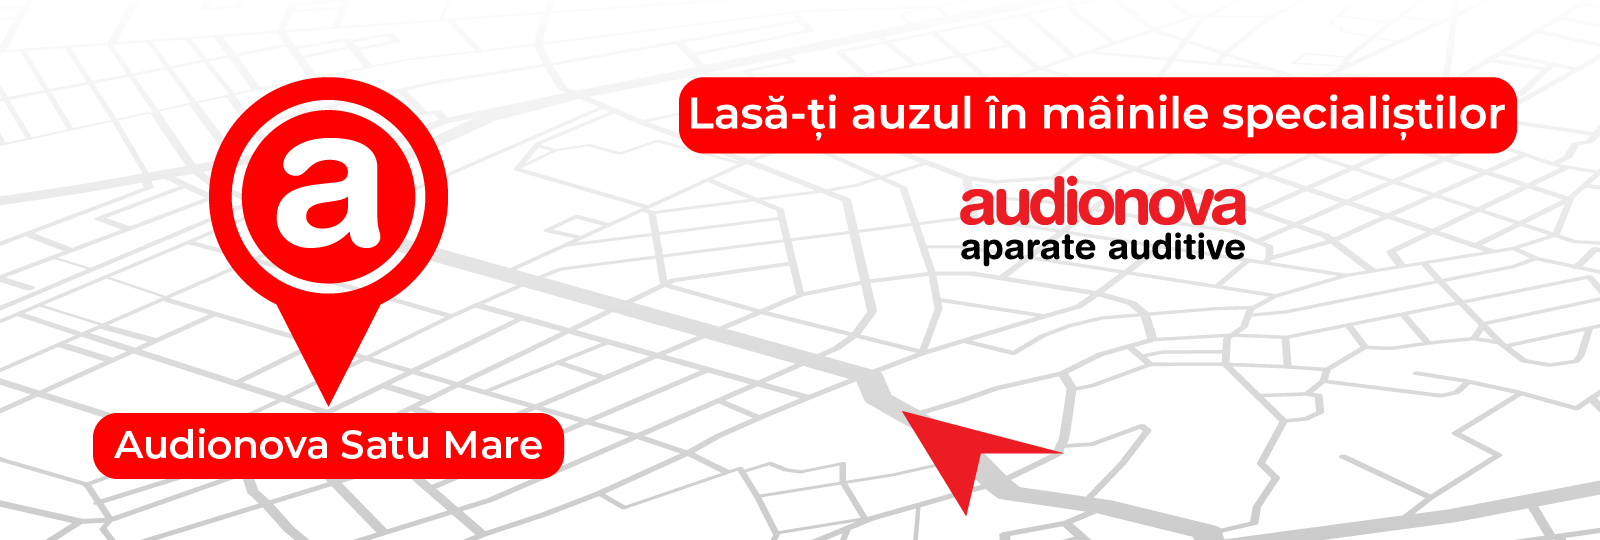 aparate auditive satu mare